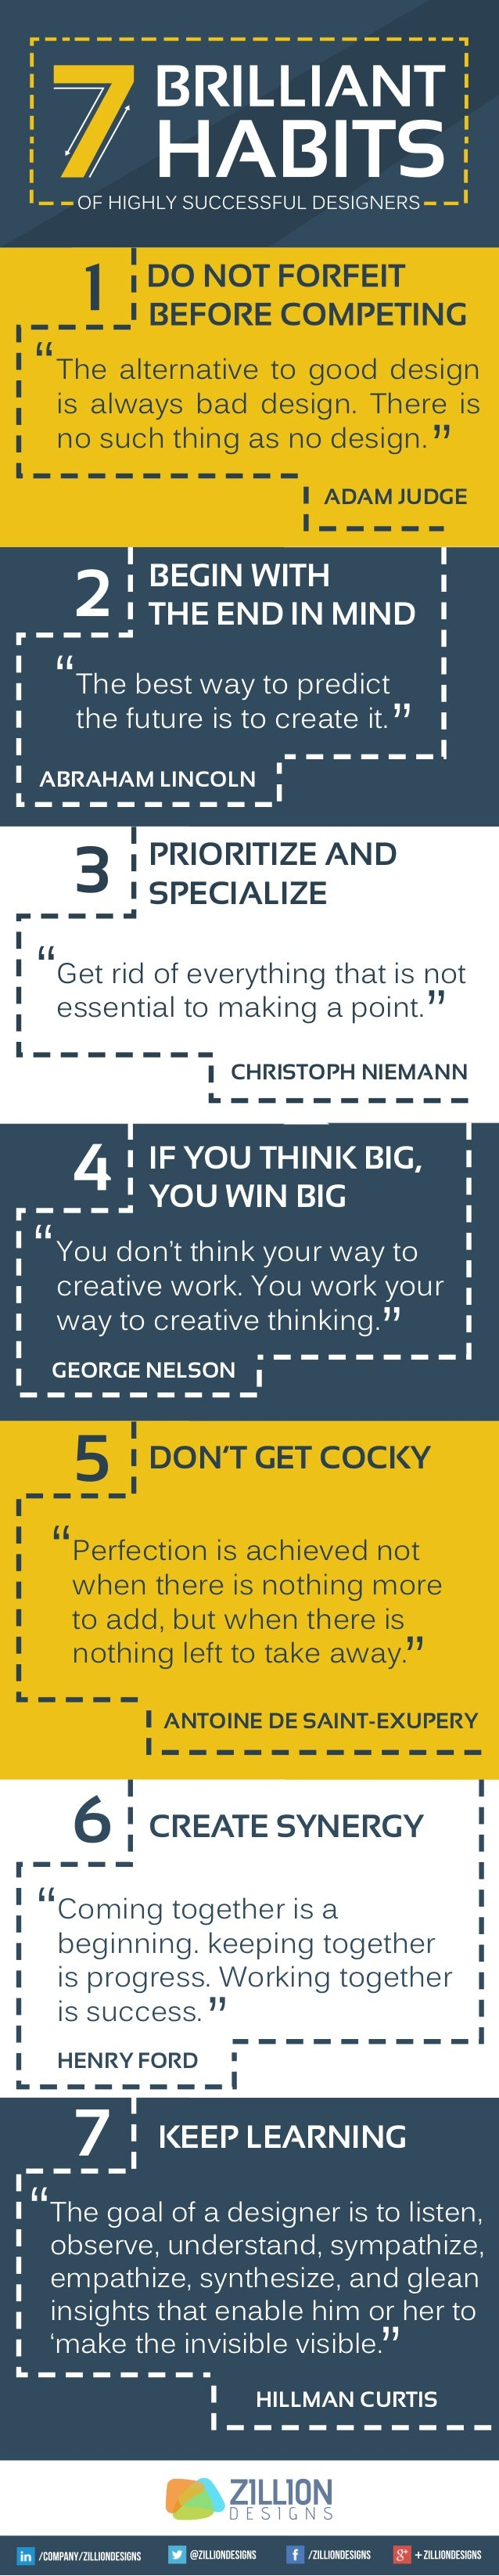 BEGIN WITH THE END IN MIND IF YOU THINK BIG, YOU WIN BIG DON'T GET COCKY CREATE SYNERGY KEEP LEARNING PRIORITIZE AND SPECI...